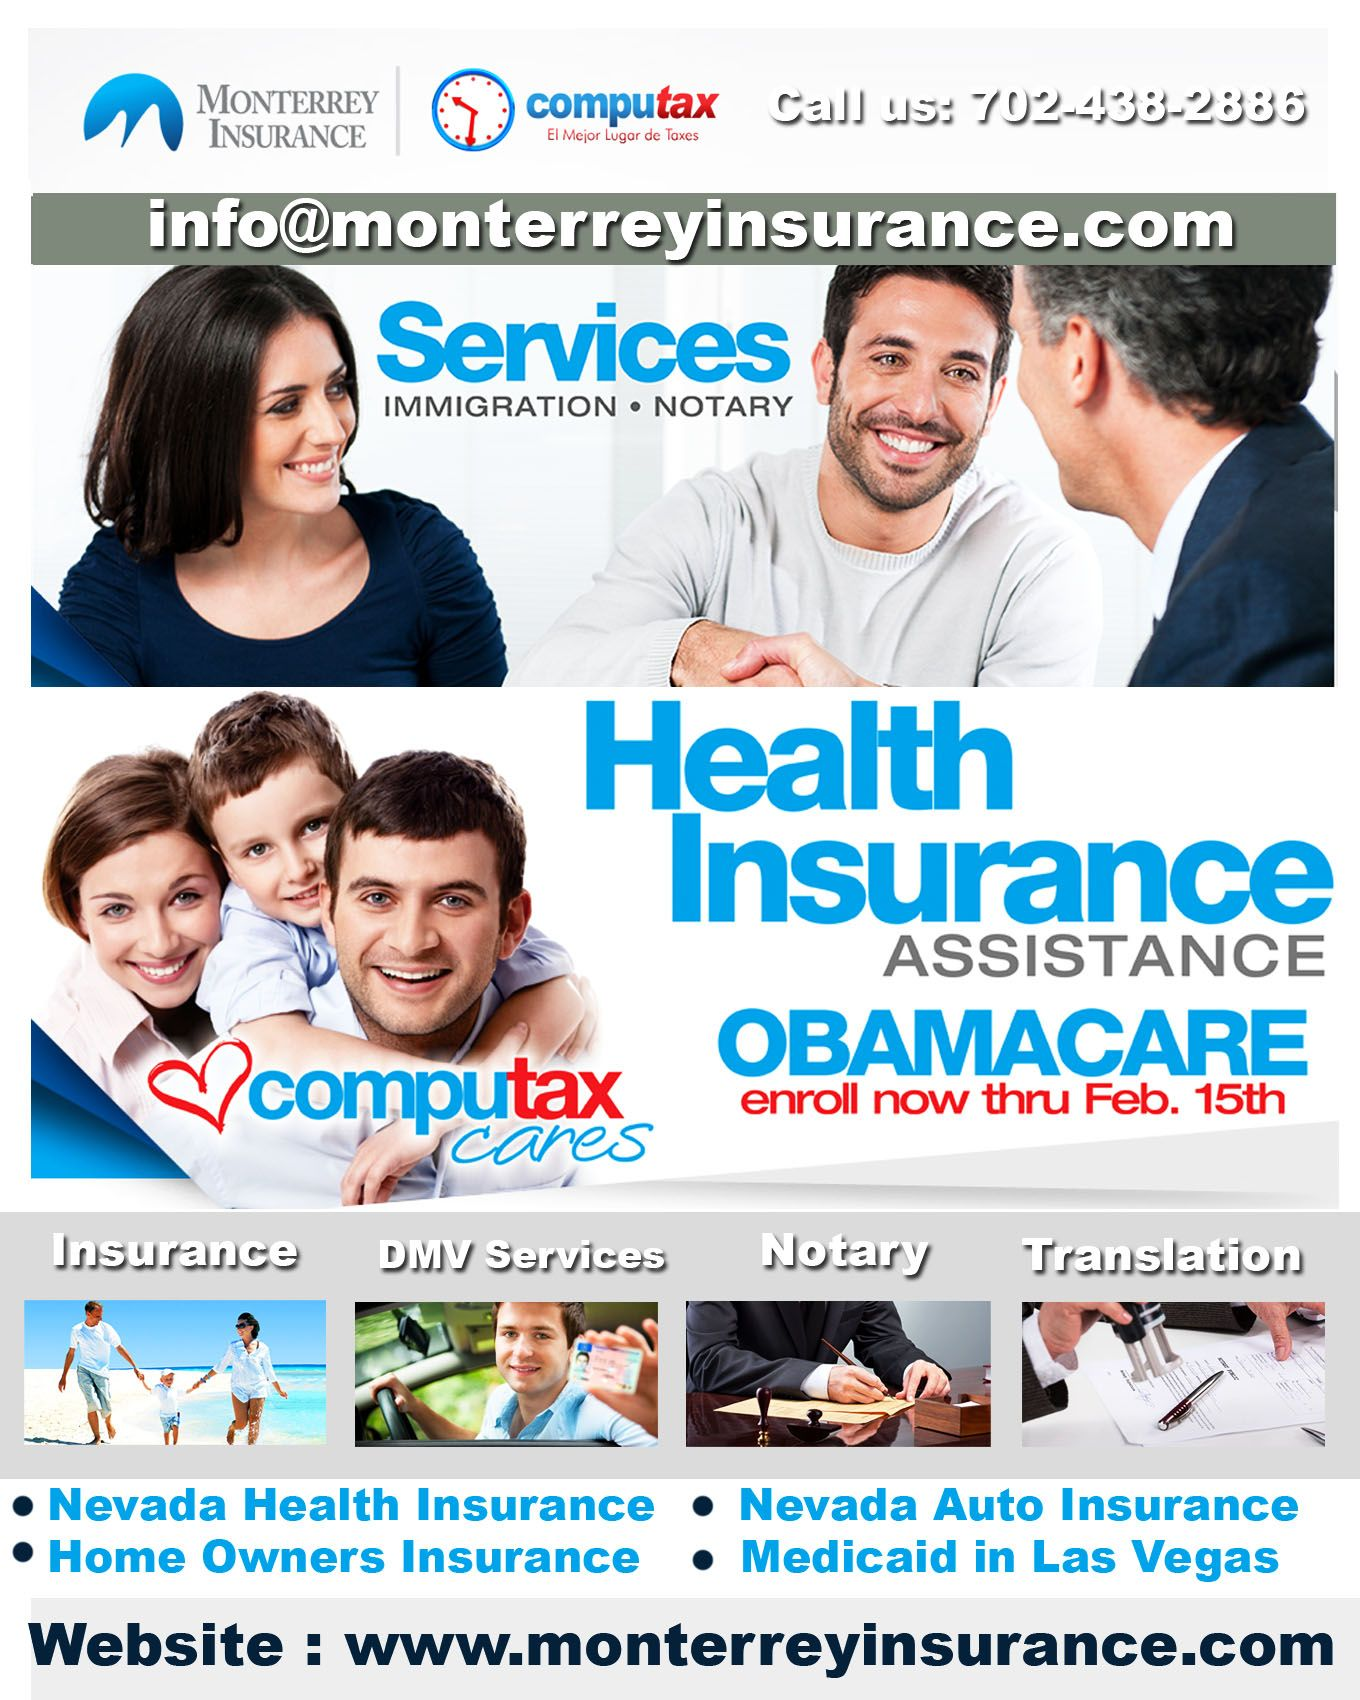 Monterrey Insurance is a certified insurance agency which